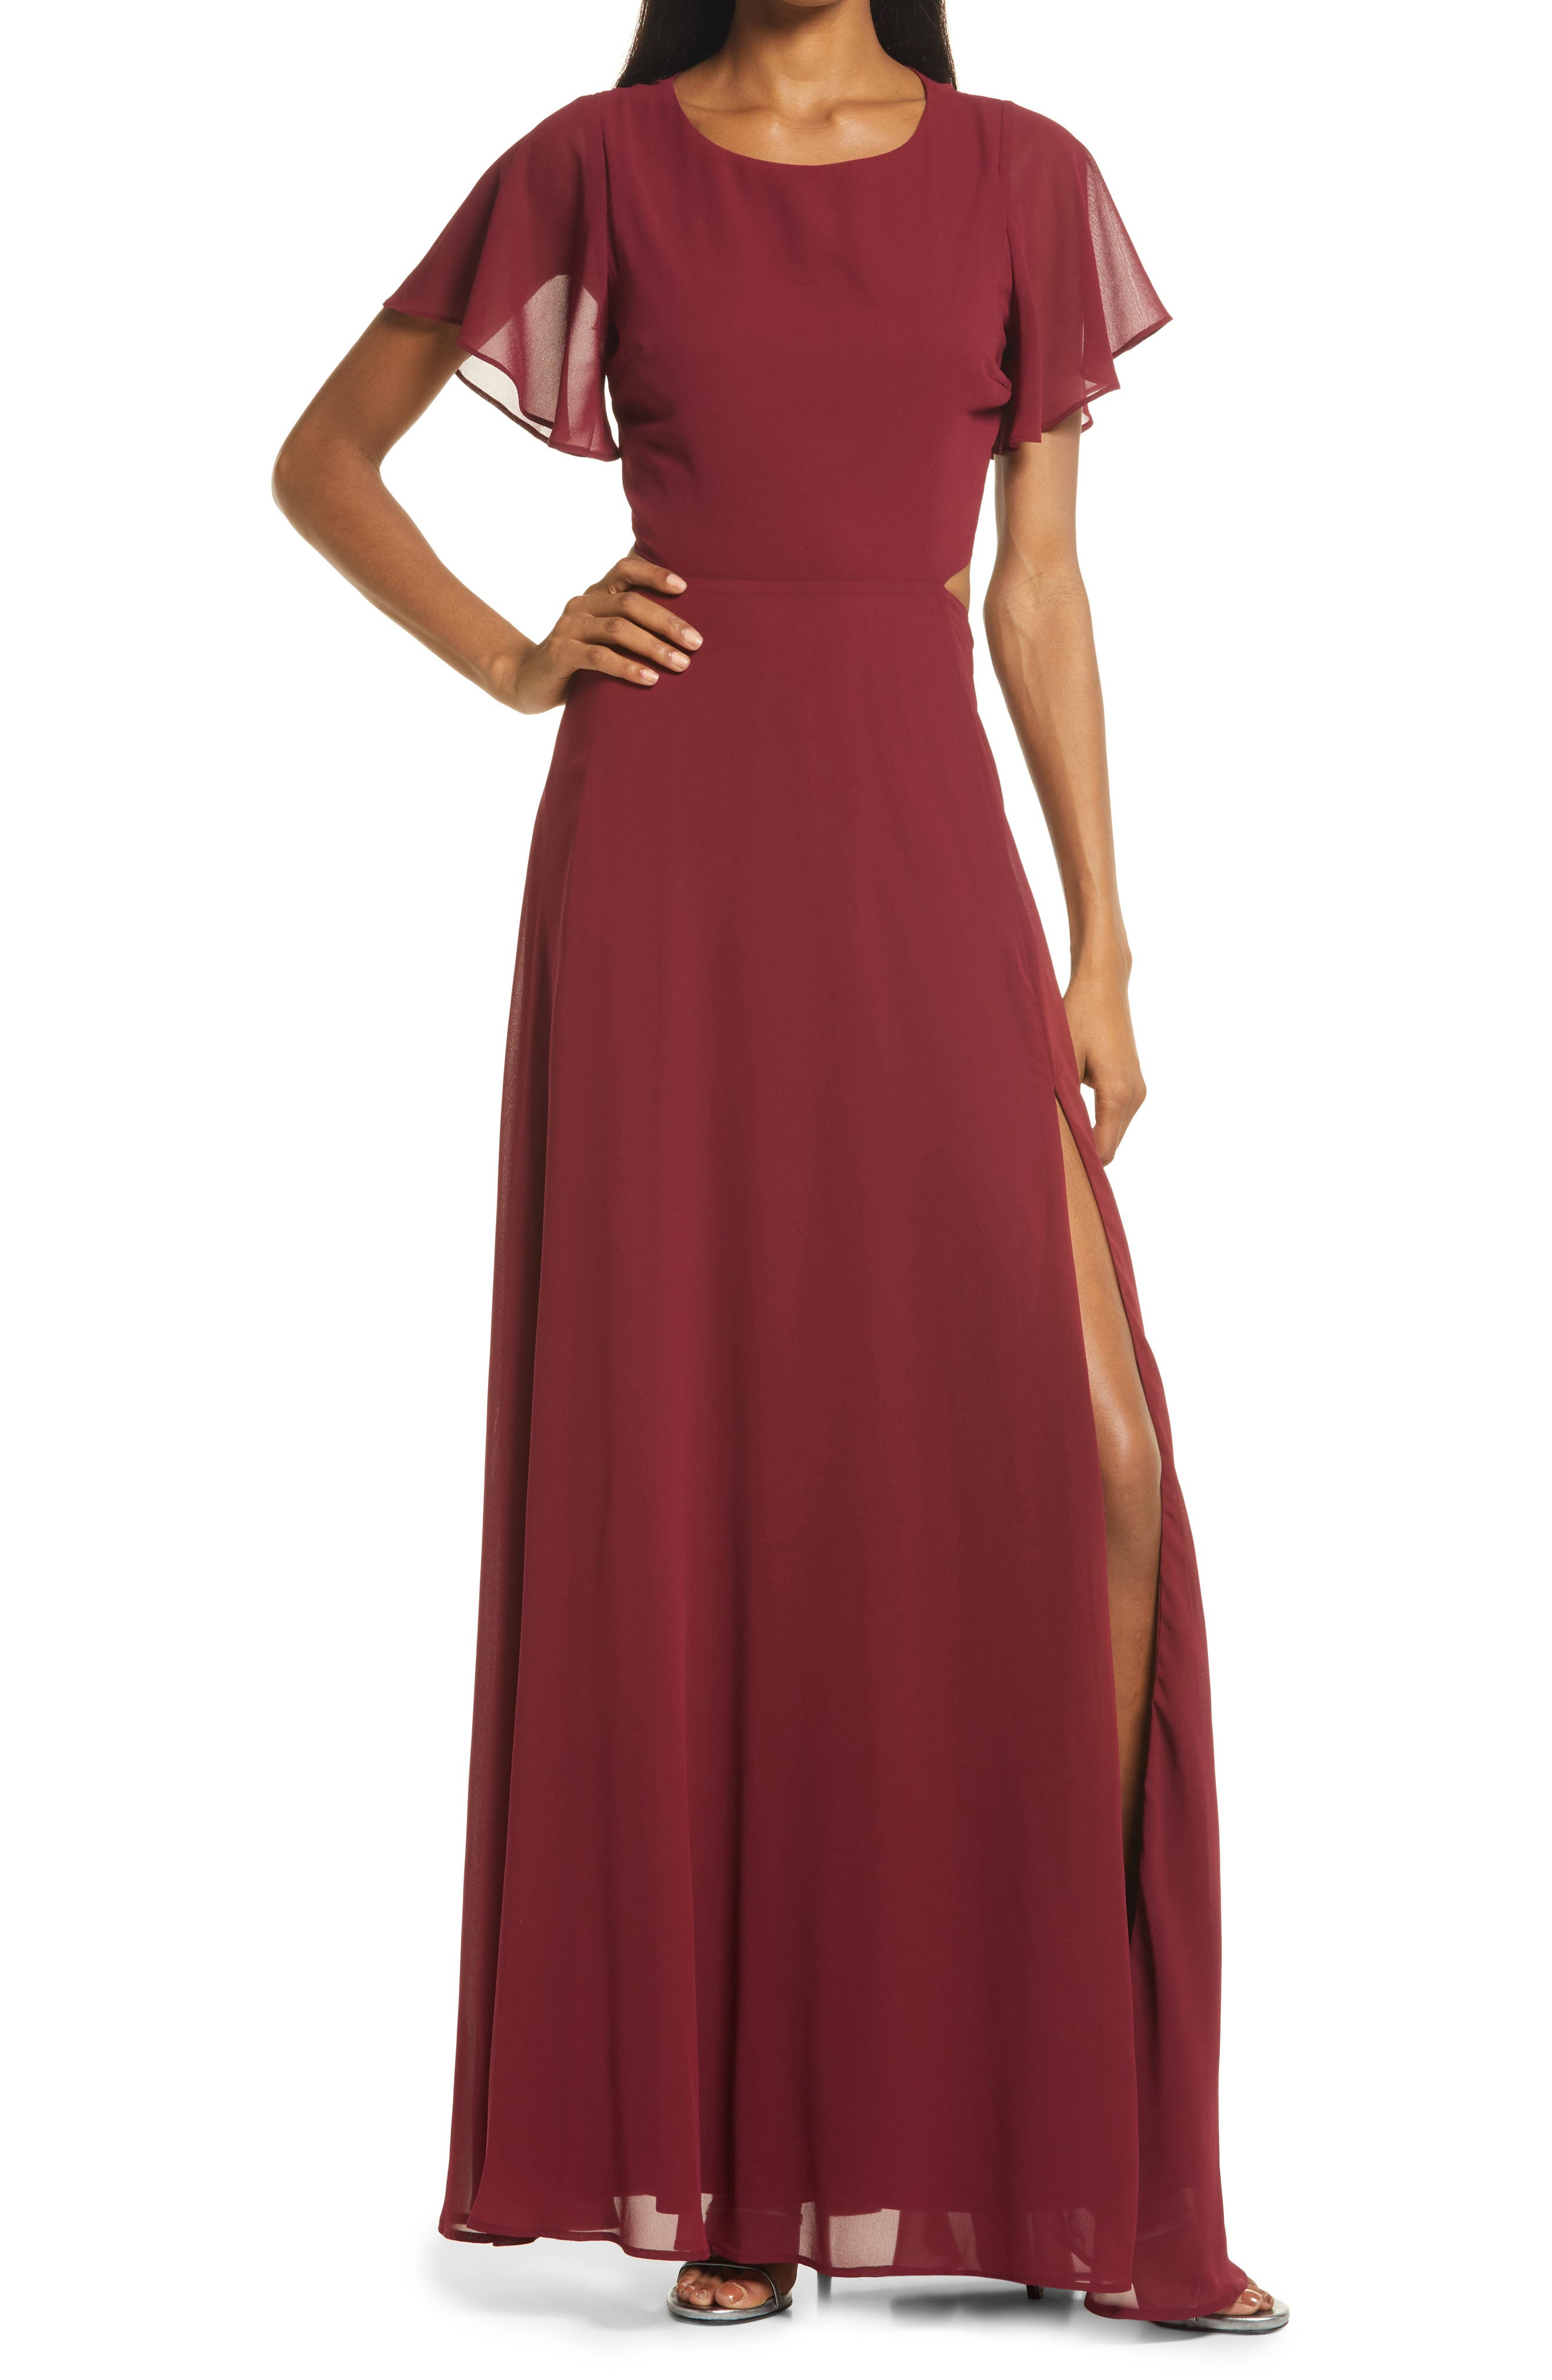 1930s Evening Dresses | Old Hollywood Silver Screen Dresses Womens Lulus Garden Bliss Cutout Evening Gown Size XX-Small - Burgundy $88.00 AT vintagedancer.com